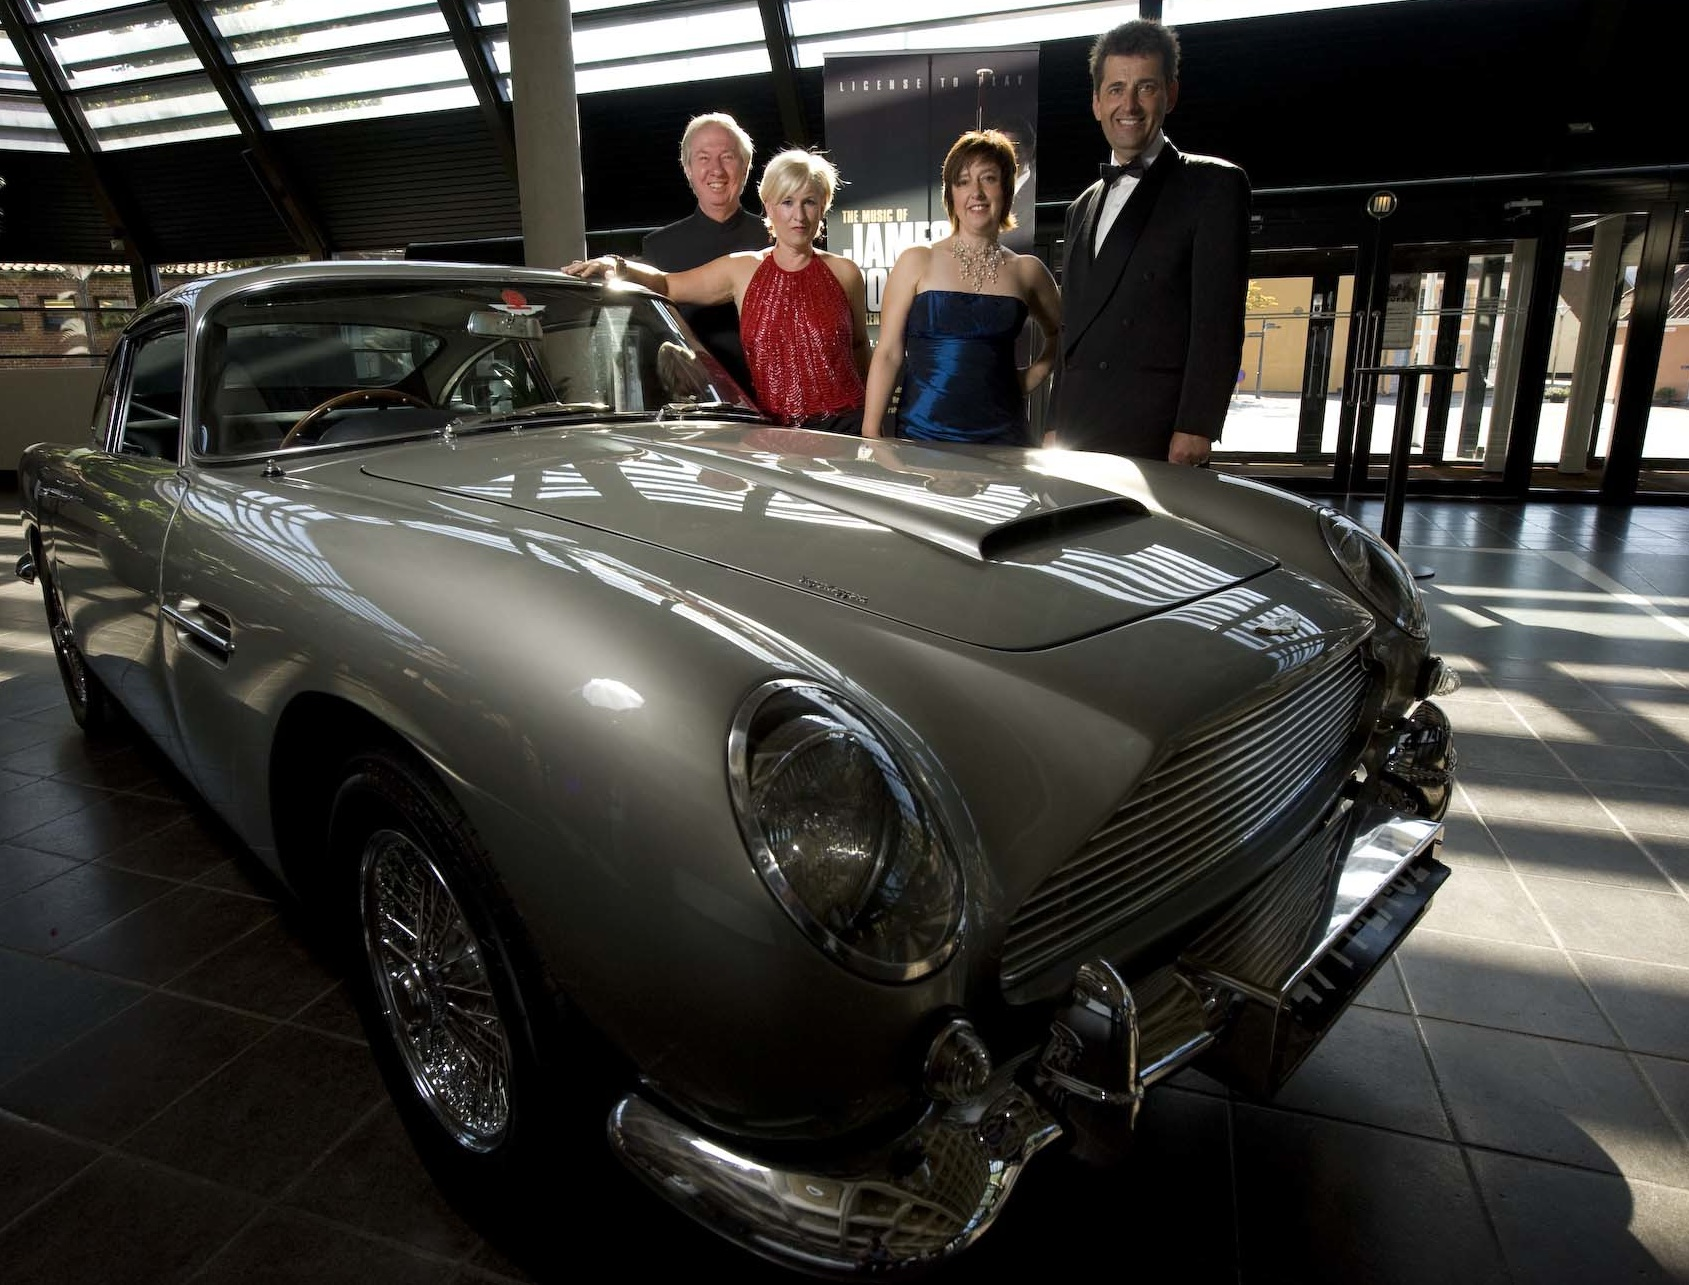 James Bond promo with Grainne Renehan, Graham Bickley and Gareth Hudson